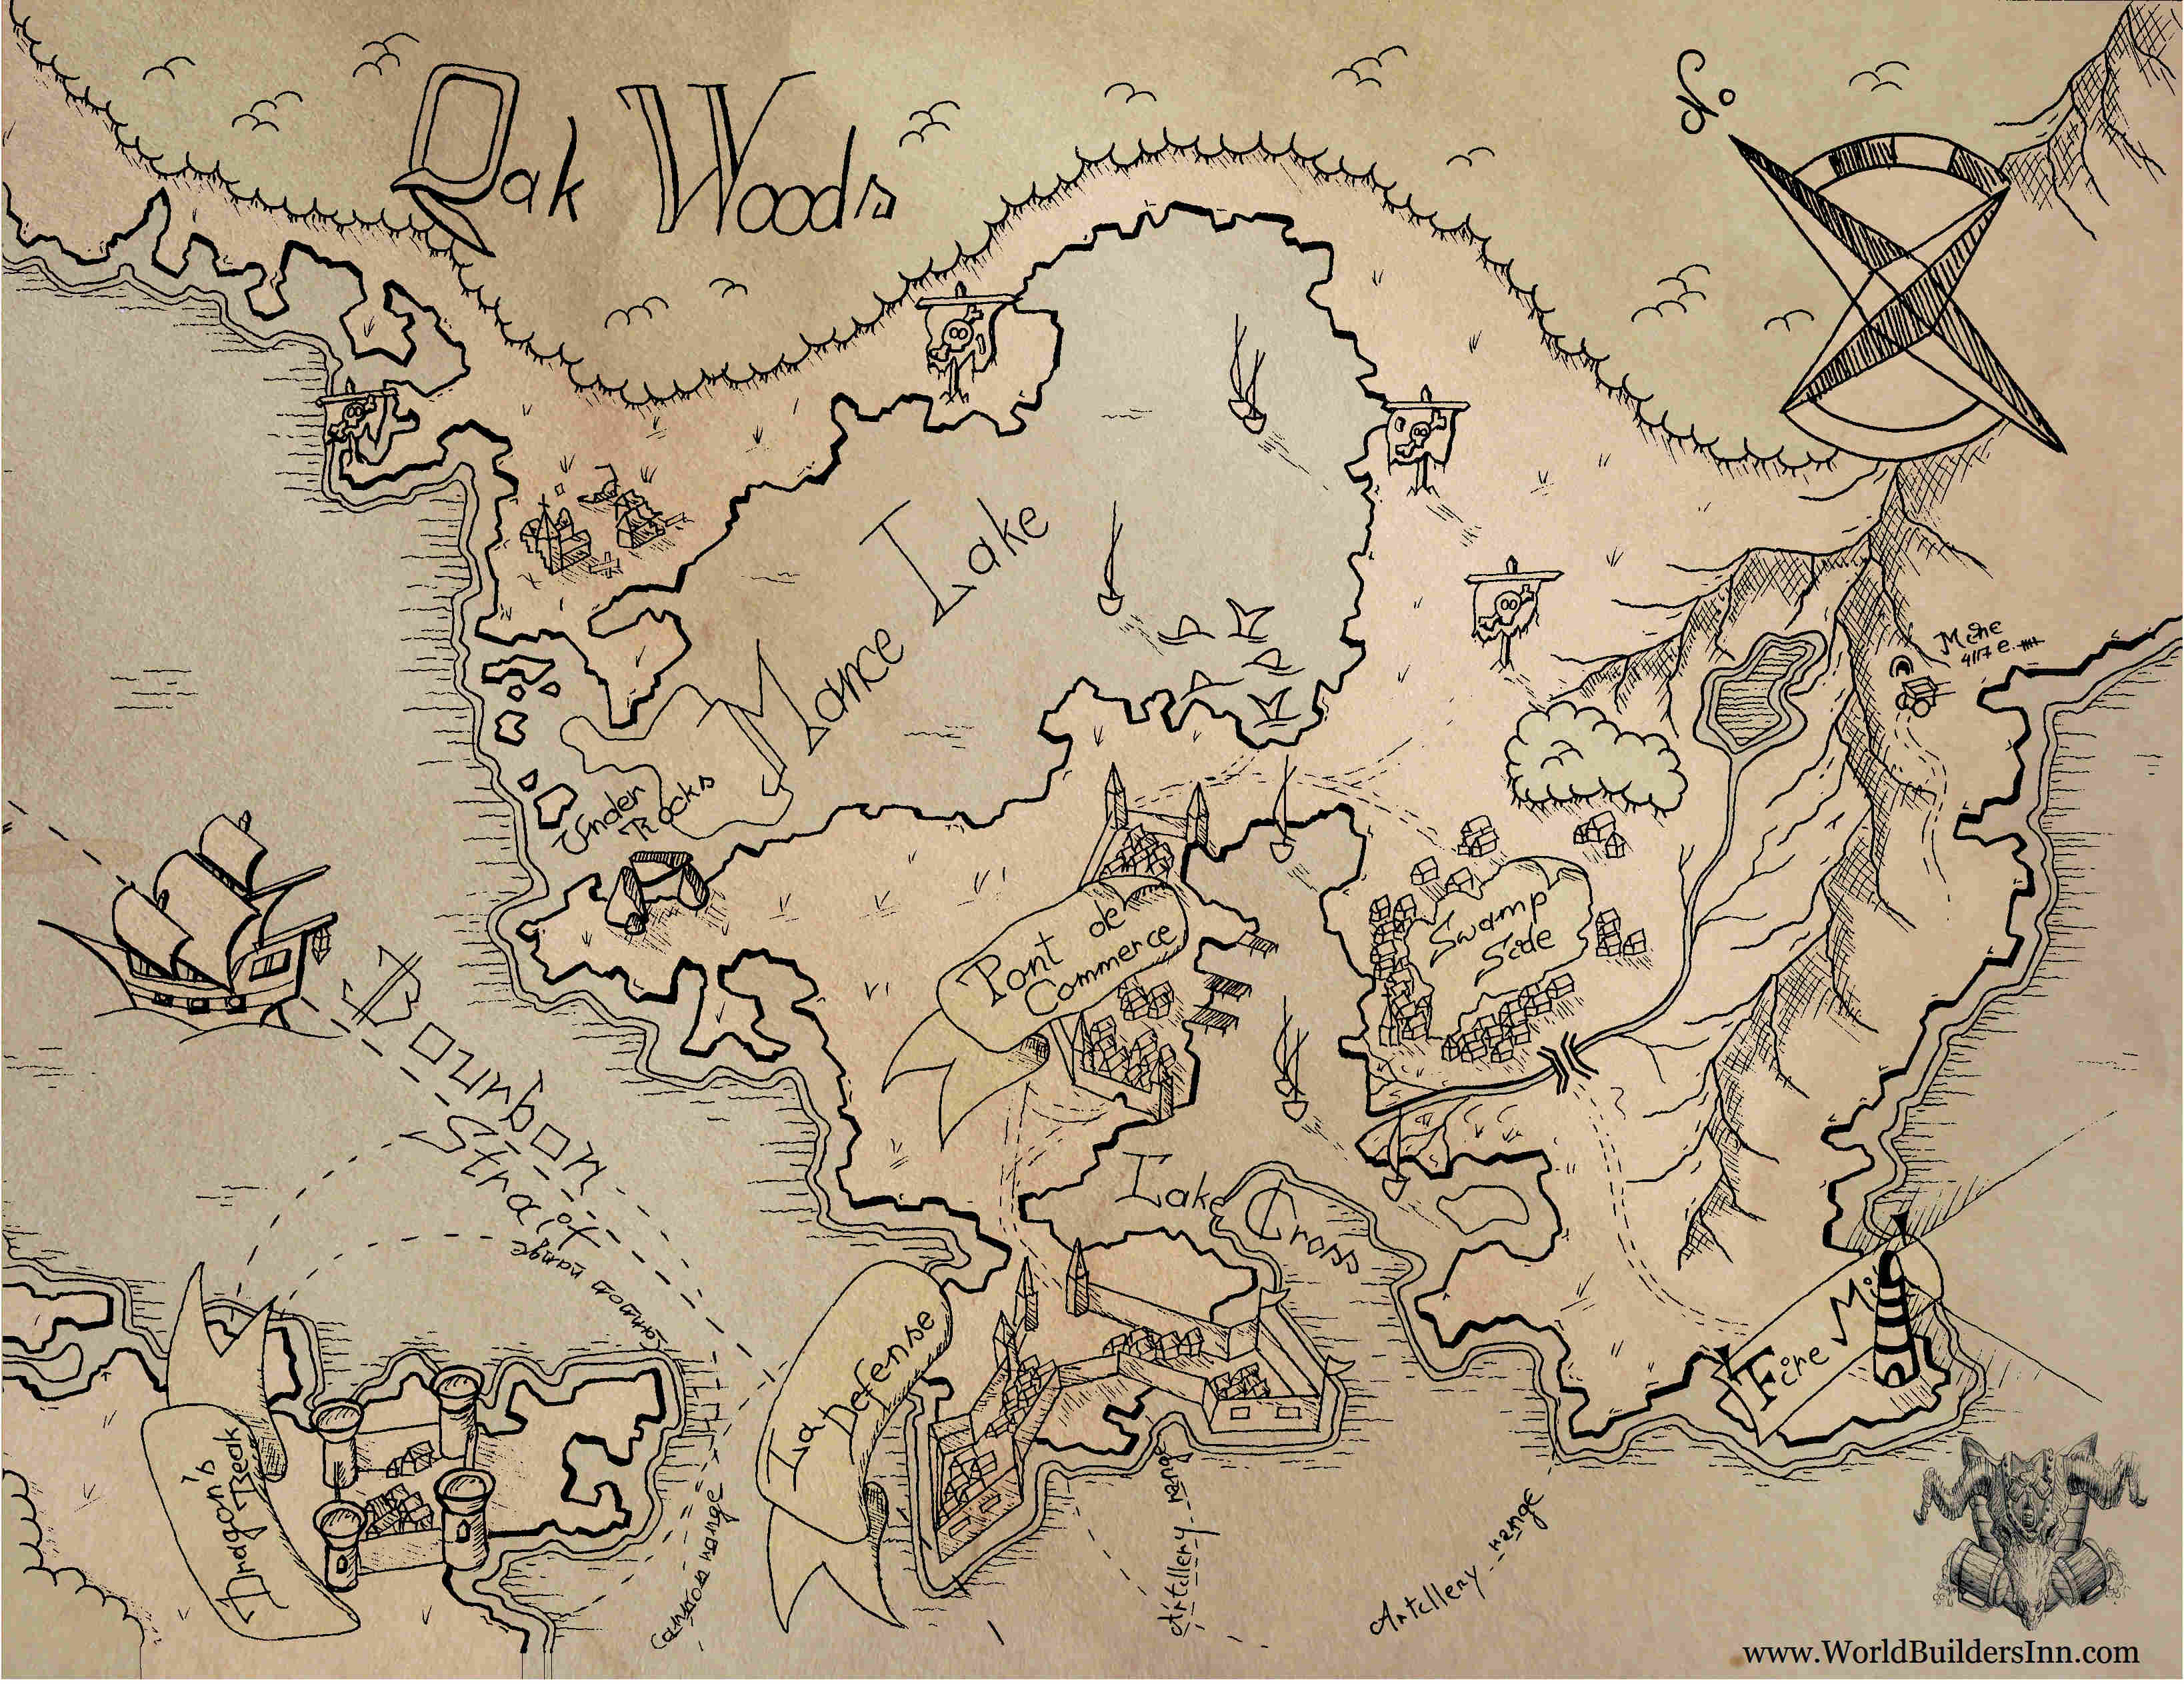 Worldbuilding io: The Sellsword Summer Mapping Contest